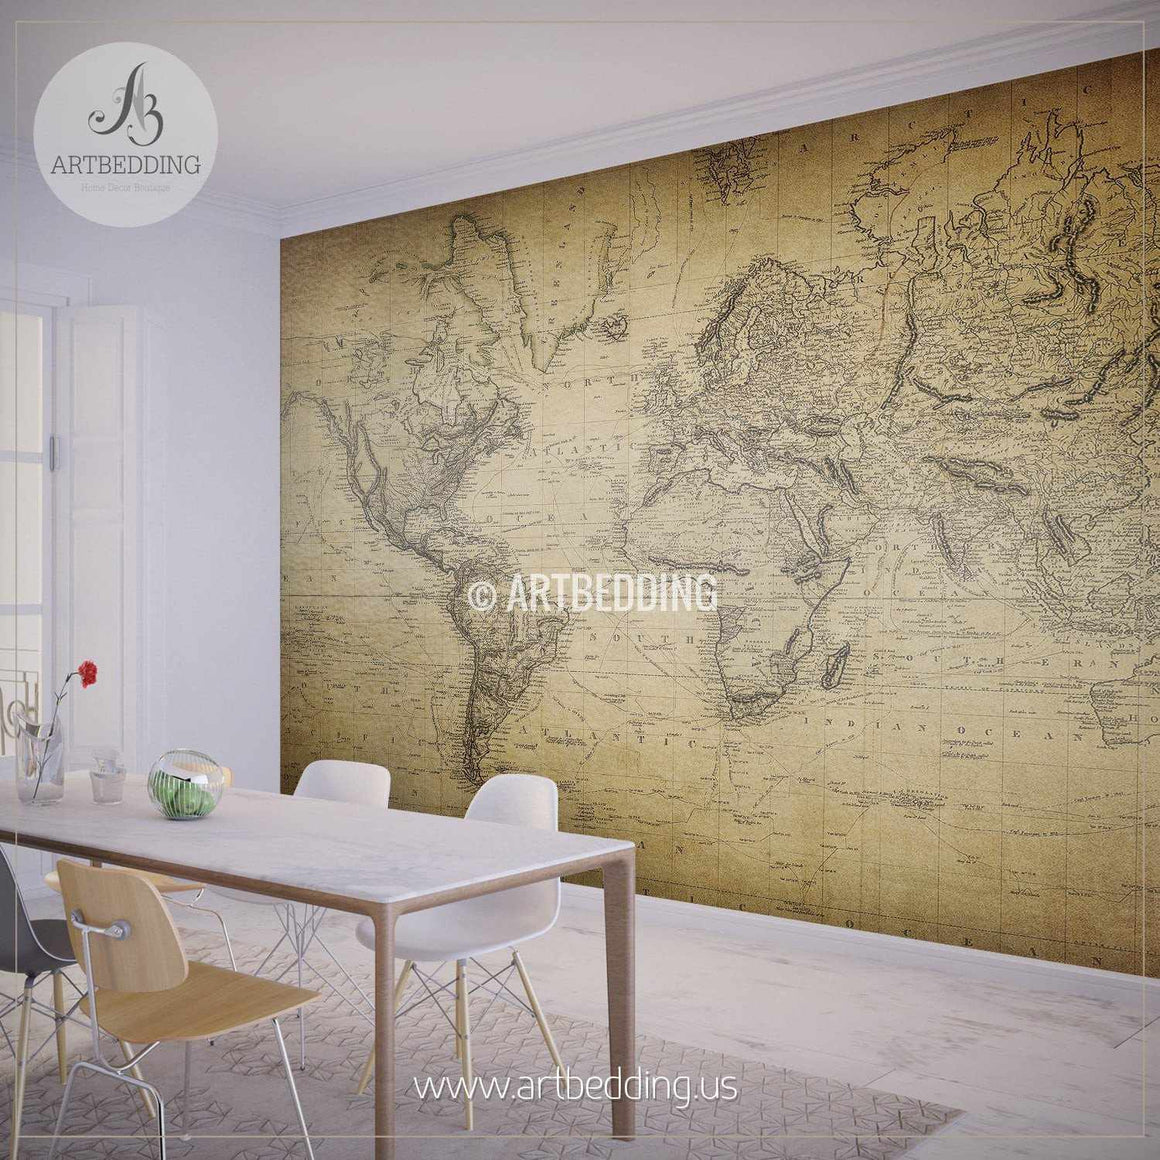 Vintage World Map from 1814 Wall Mural, Self Adhesive Peel & Stick Photo Mural, Atlas wall mural, mural home decor wall mural